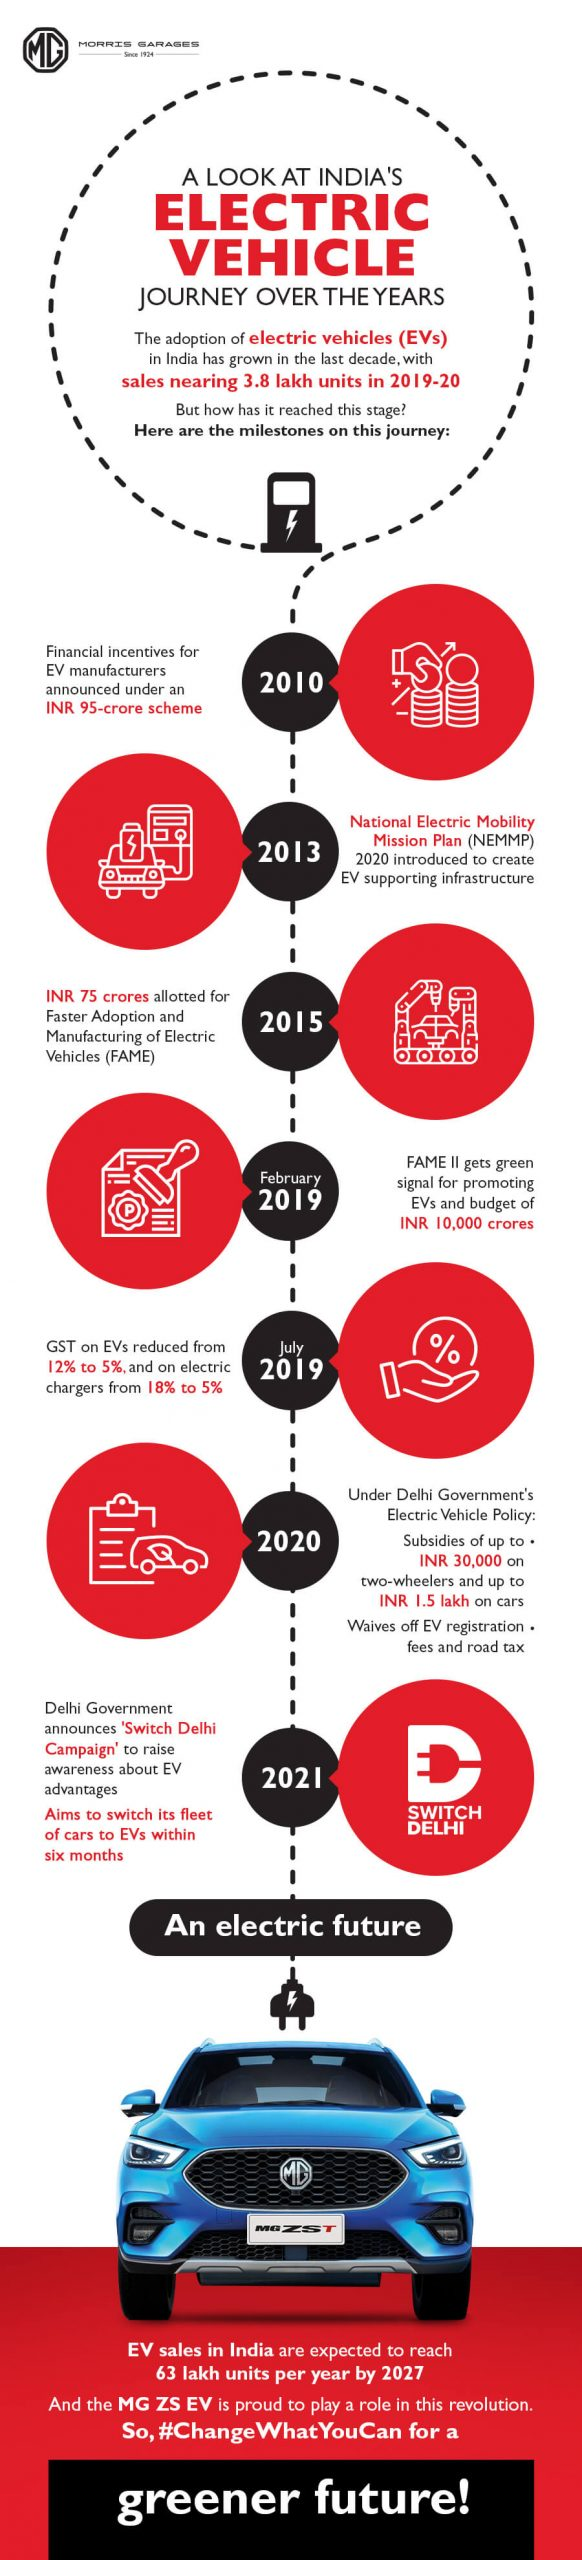 A look at India's electric vehicle journey over the years